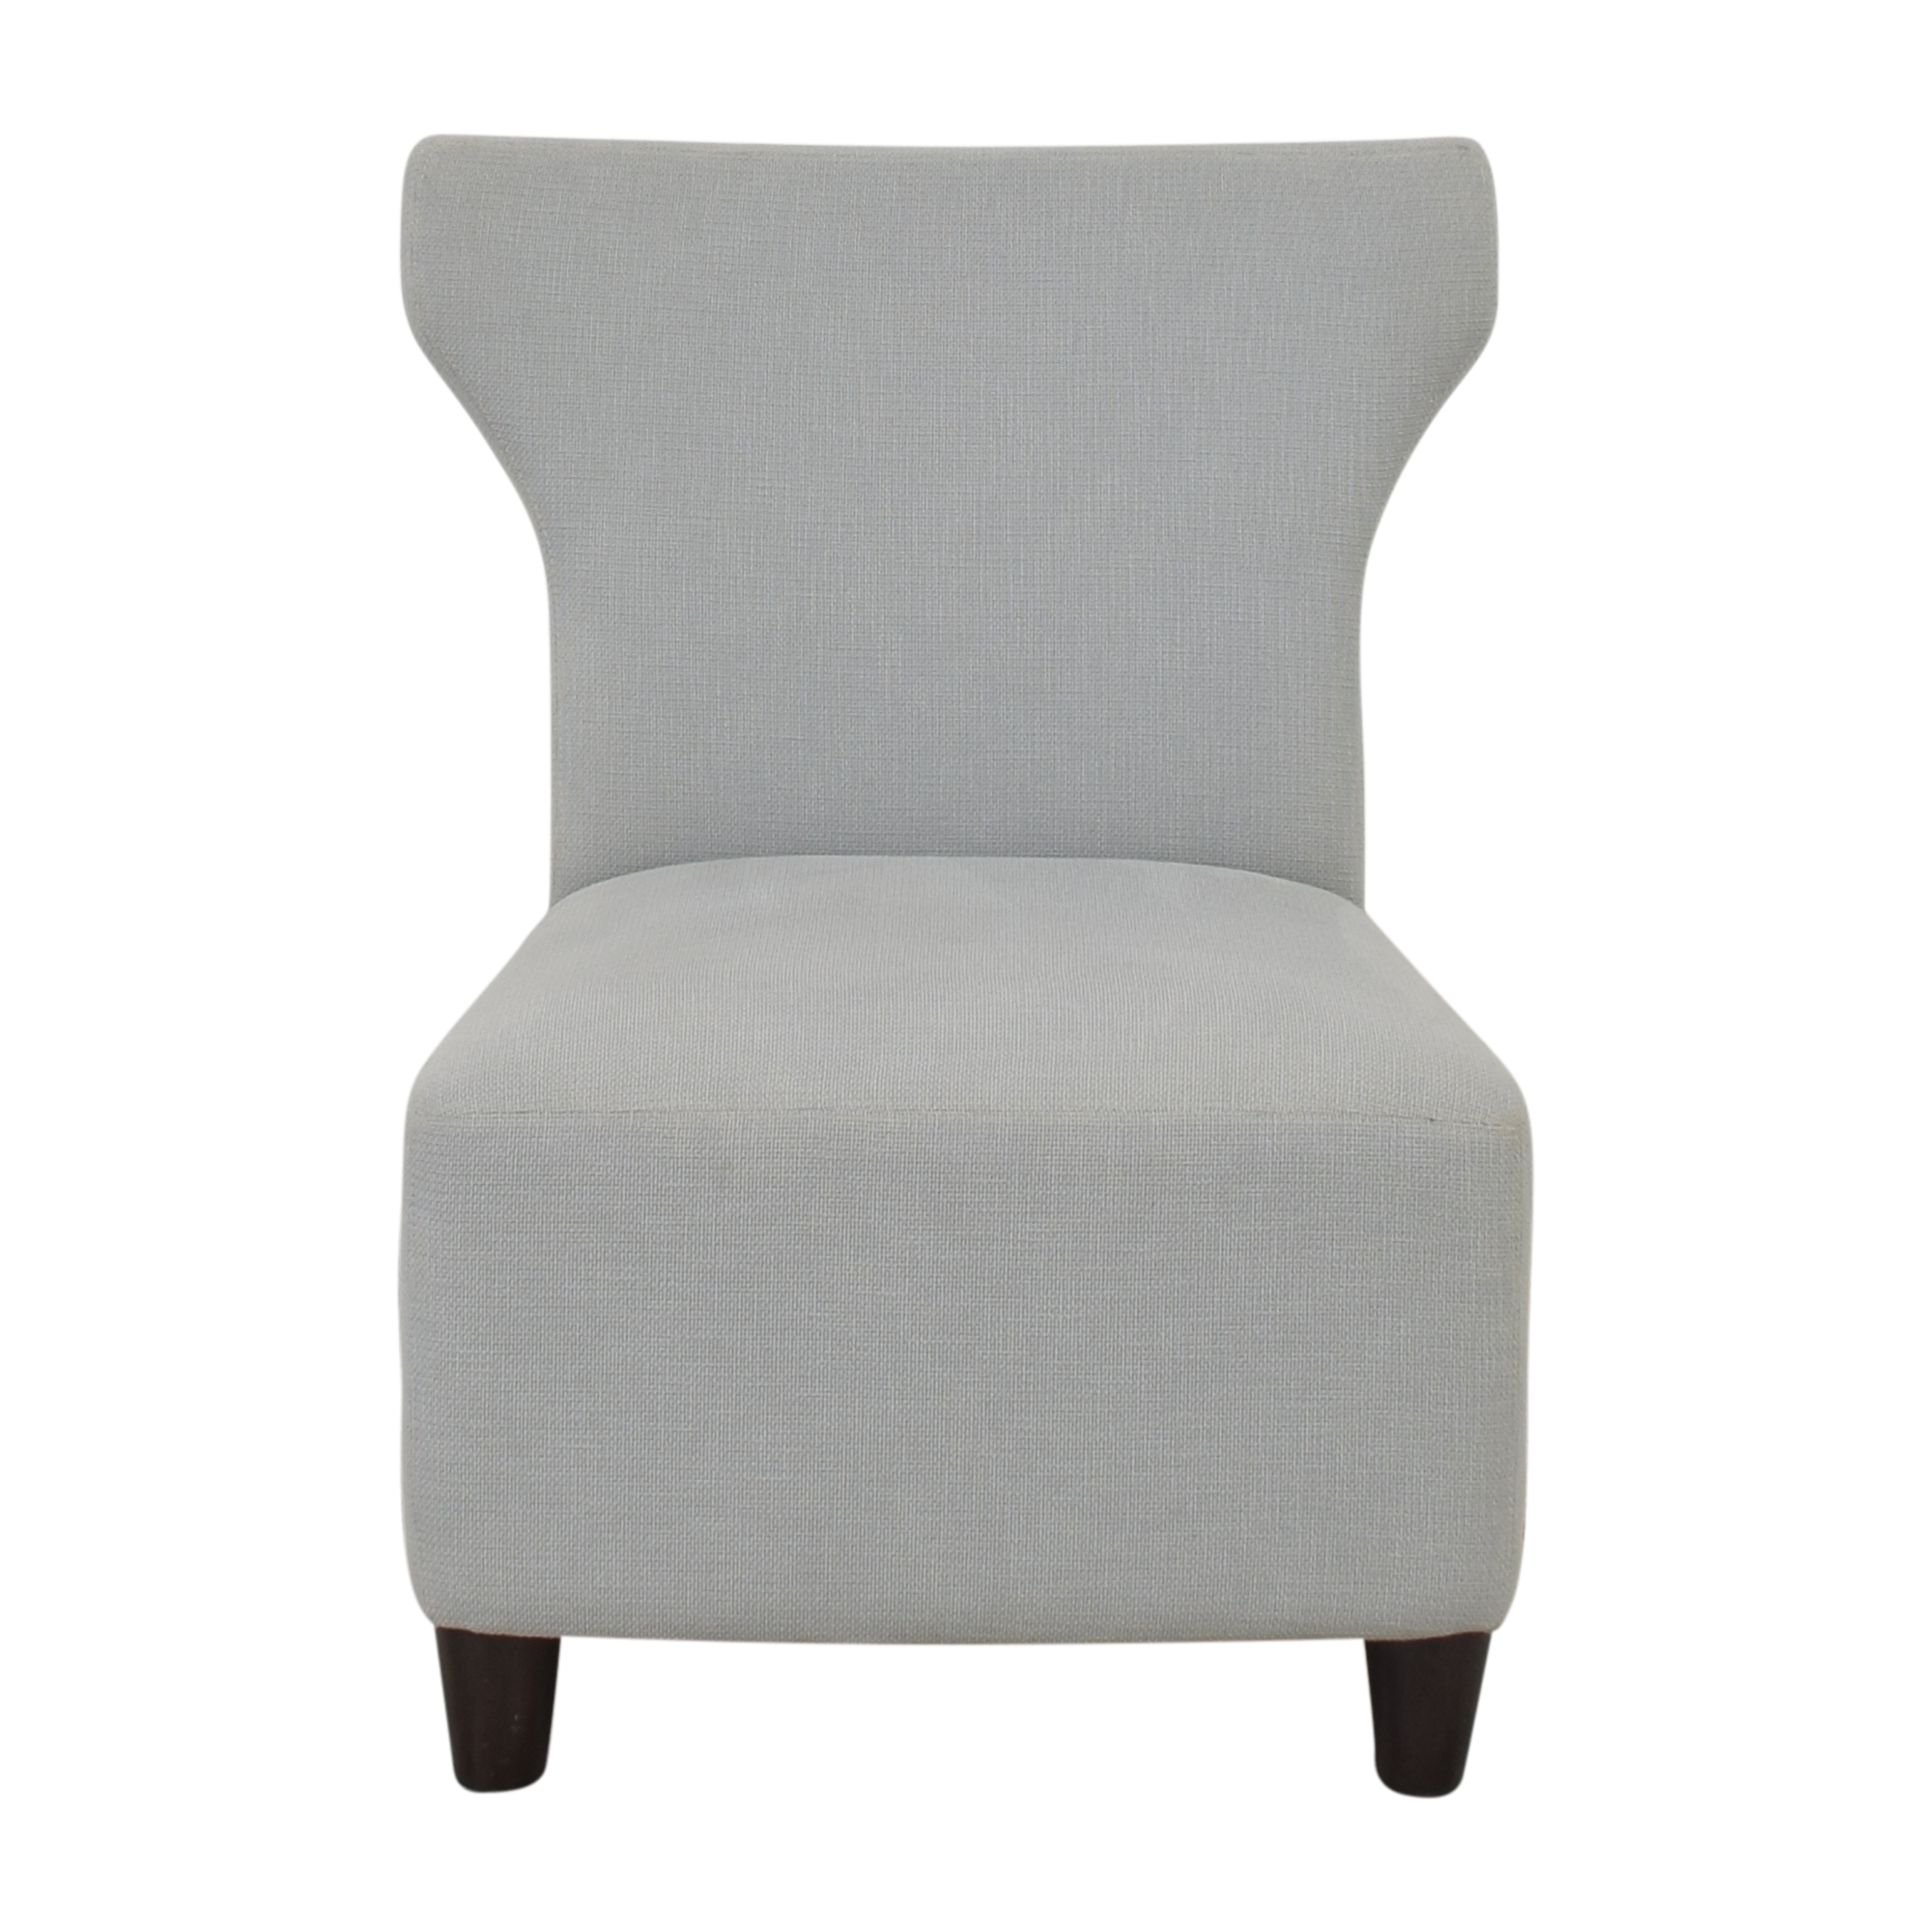 West Elm West Elm Modern Sitting Room Chair Chairs